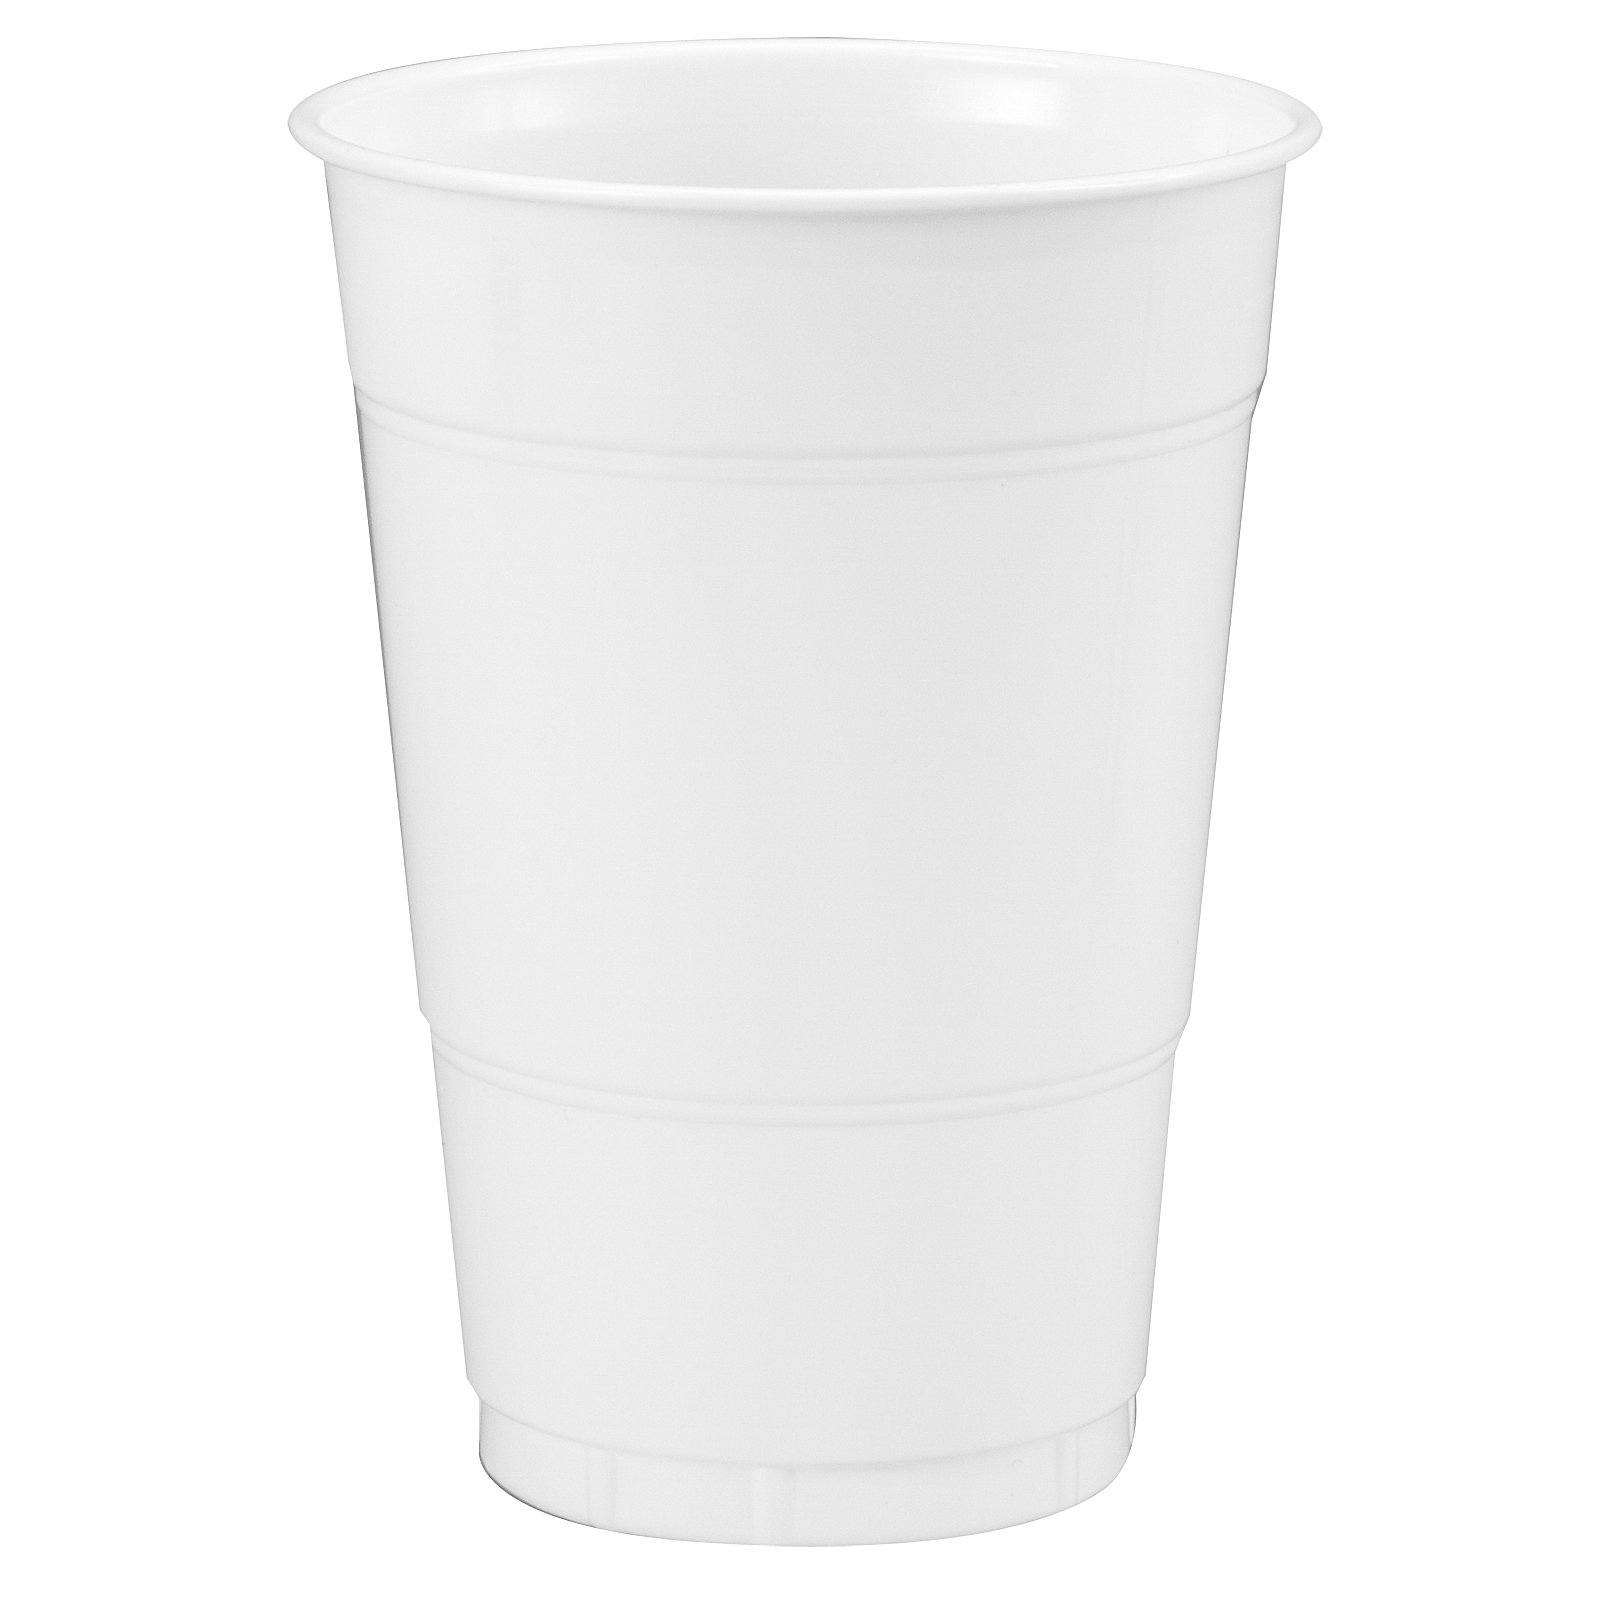 Bright White (White) 16 oz. Plastic Cups (20 count)